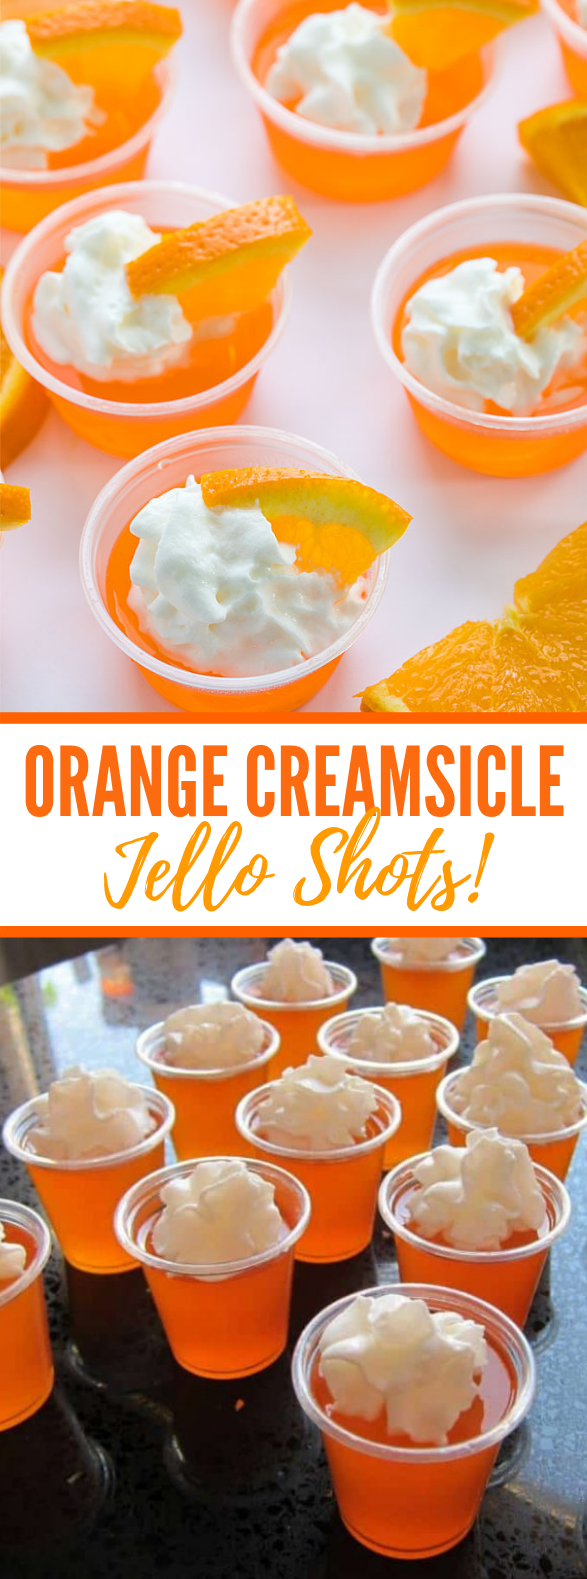 Orange Creamsicle Jello Shots #drinks #jelly